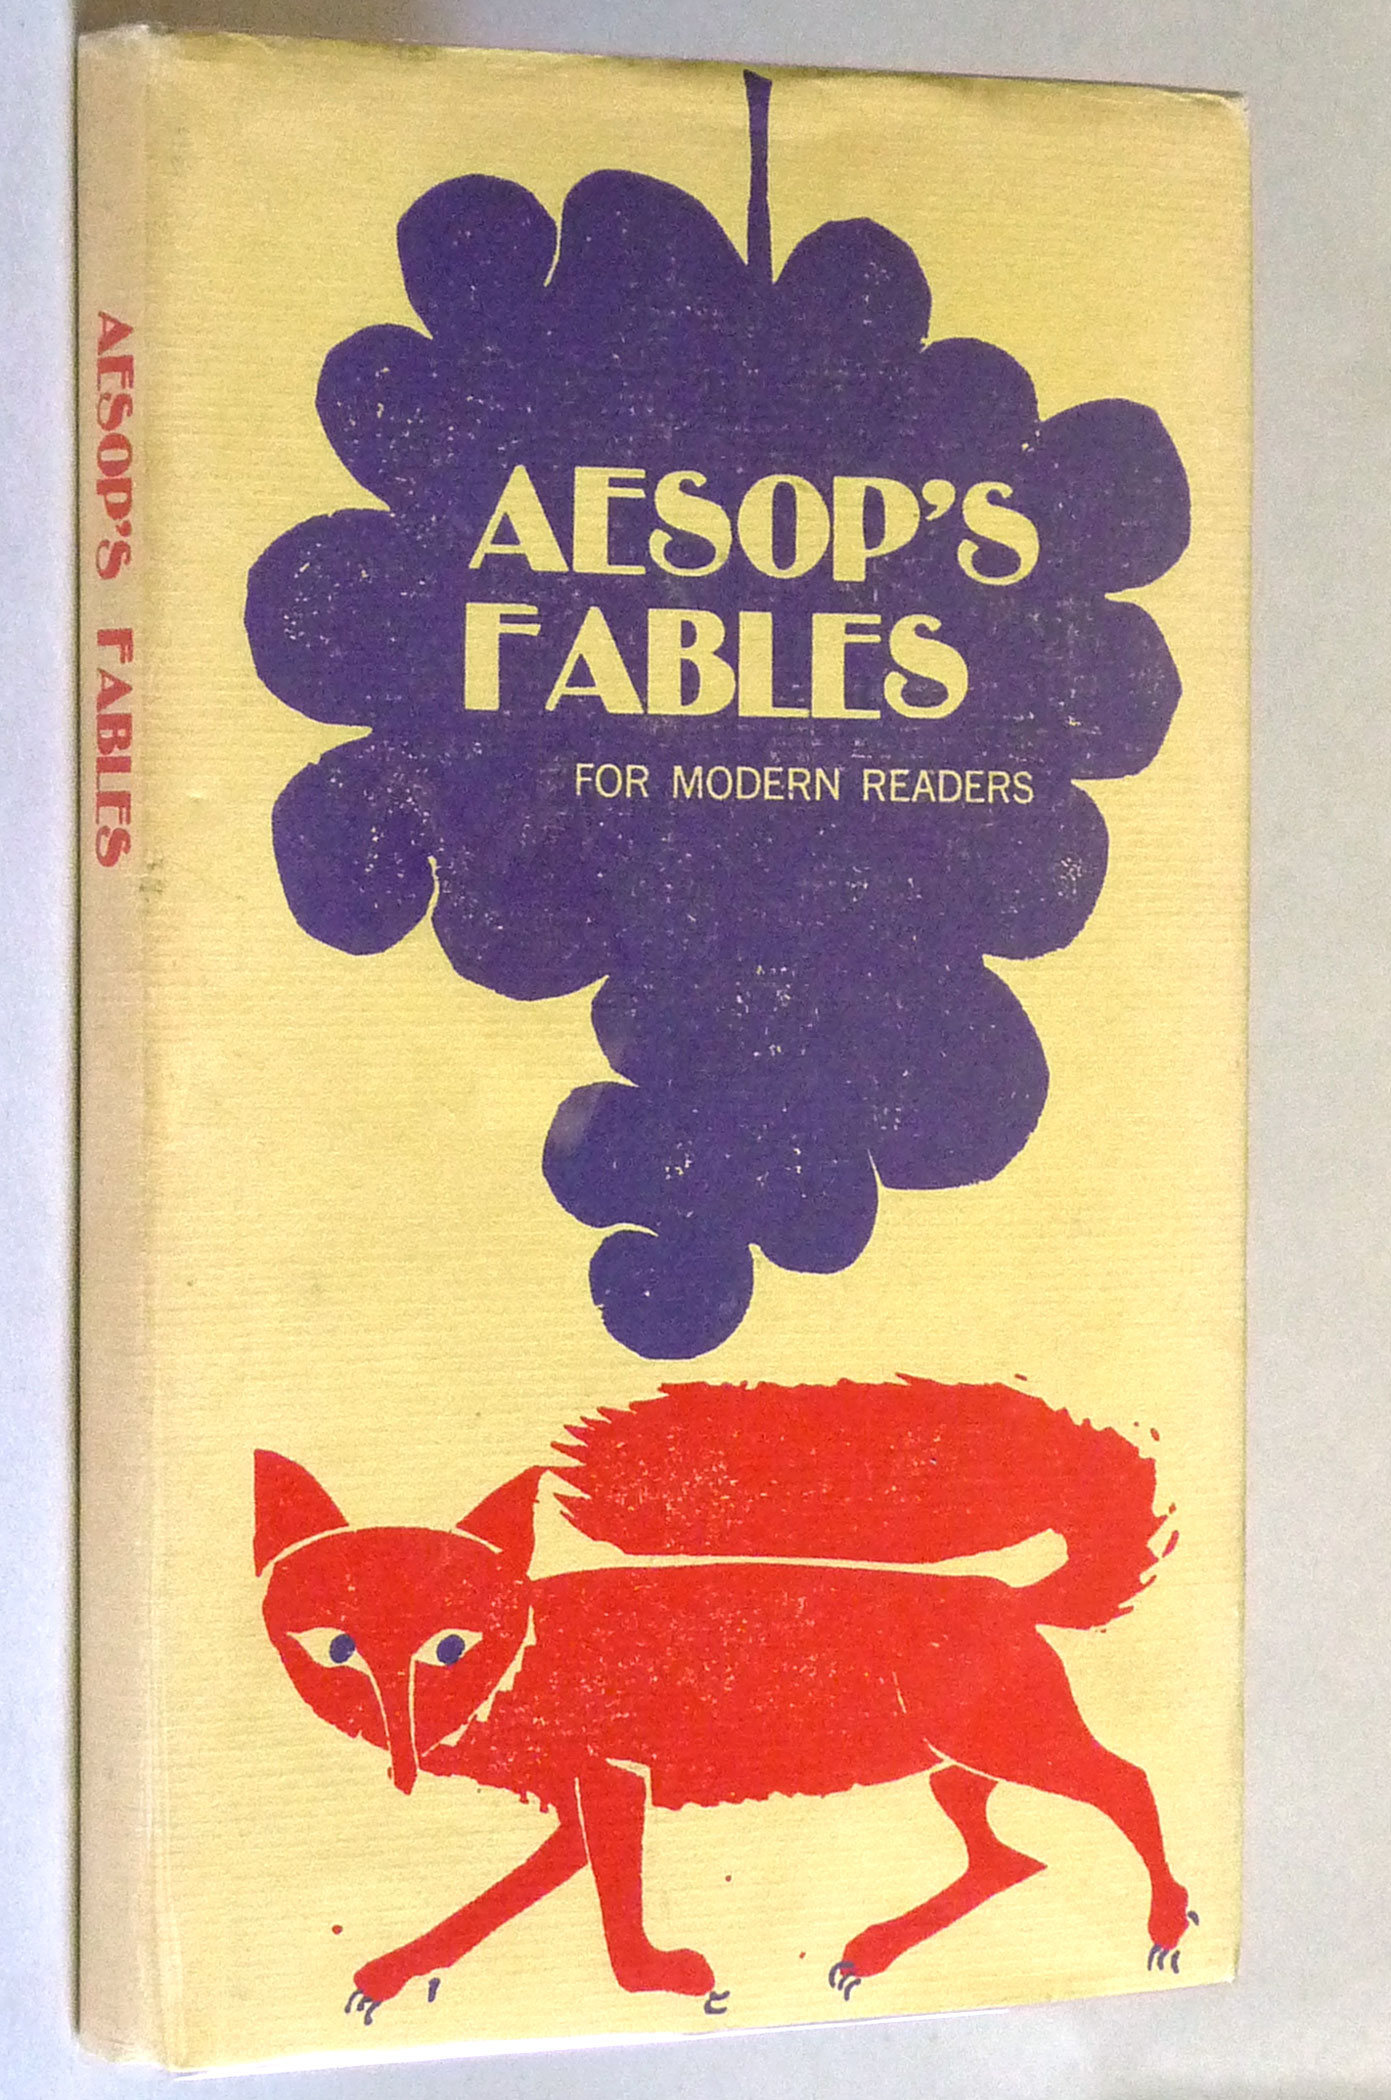 Aesop's fables for modern readers ; illustrated by Eric Carle.